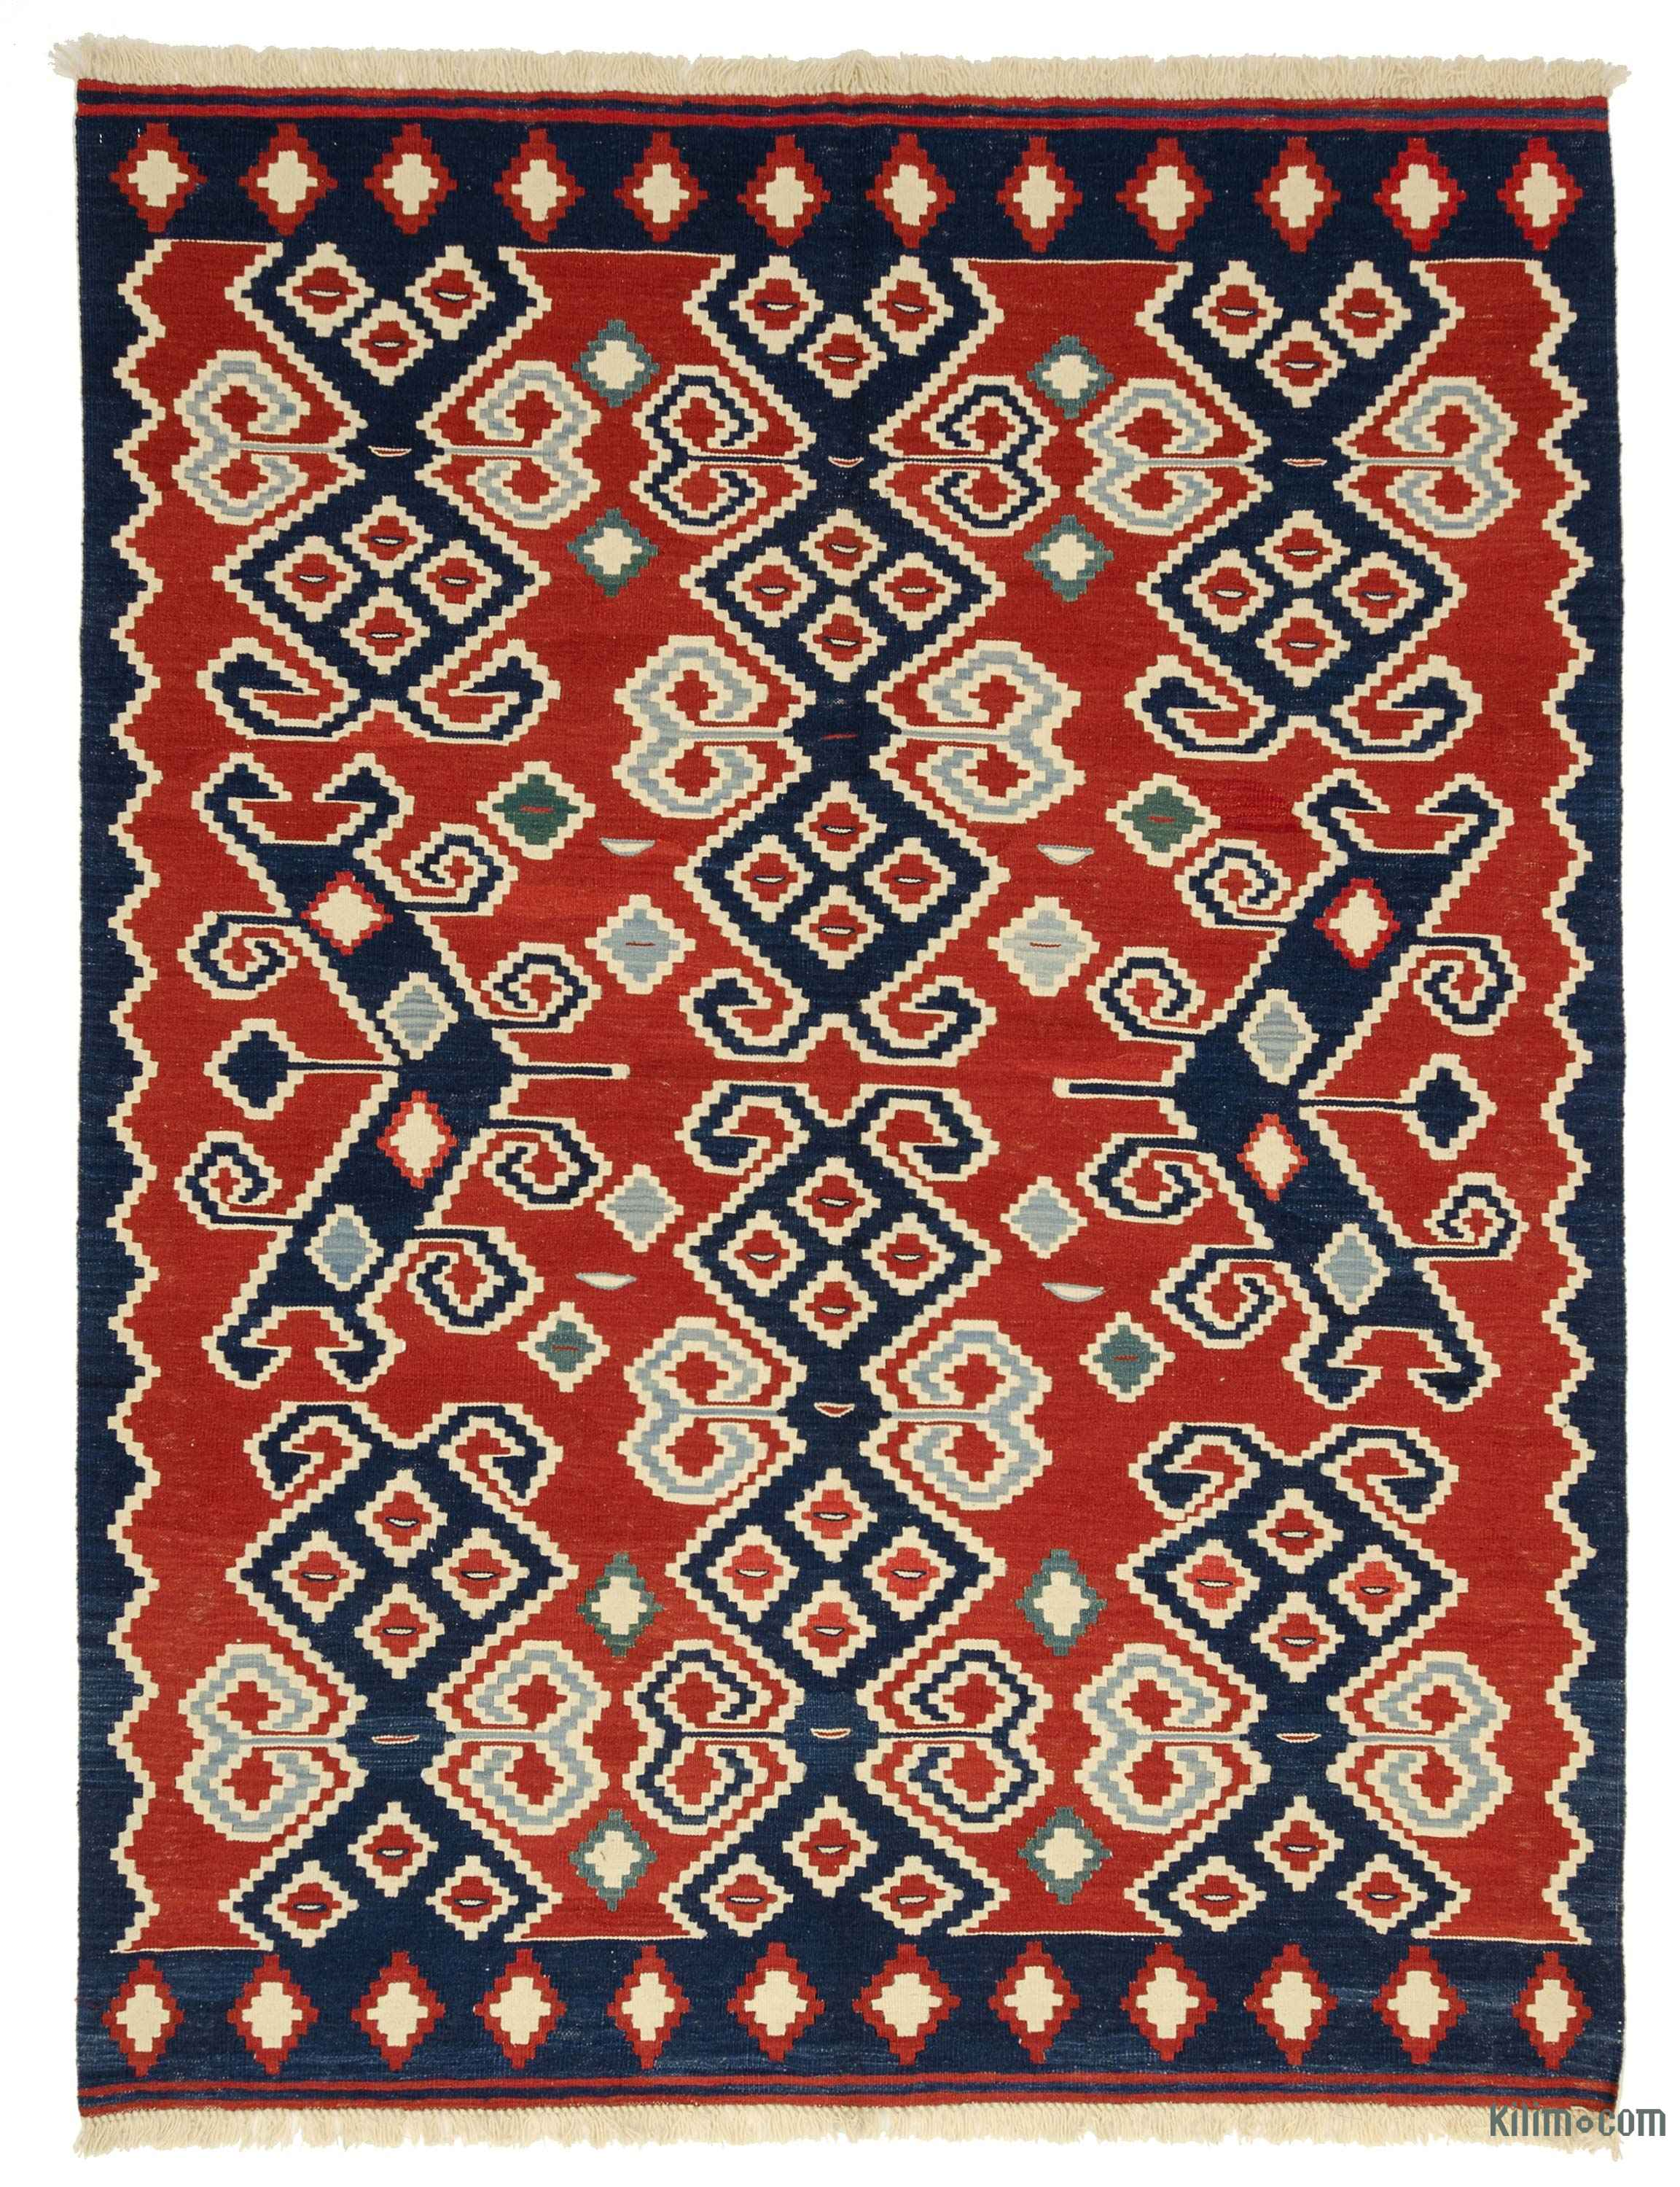 K0008836 Red New Turkish Kilim Rug : Kilim Rugs, Overdyed Vintage Rugs, Hand-made Turkish Rugs ...